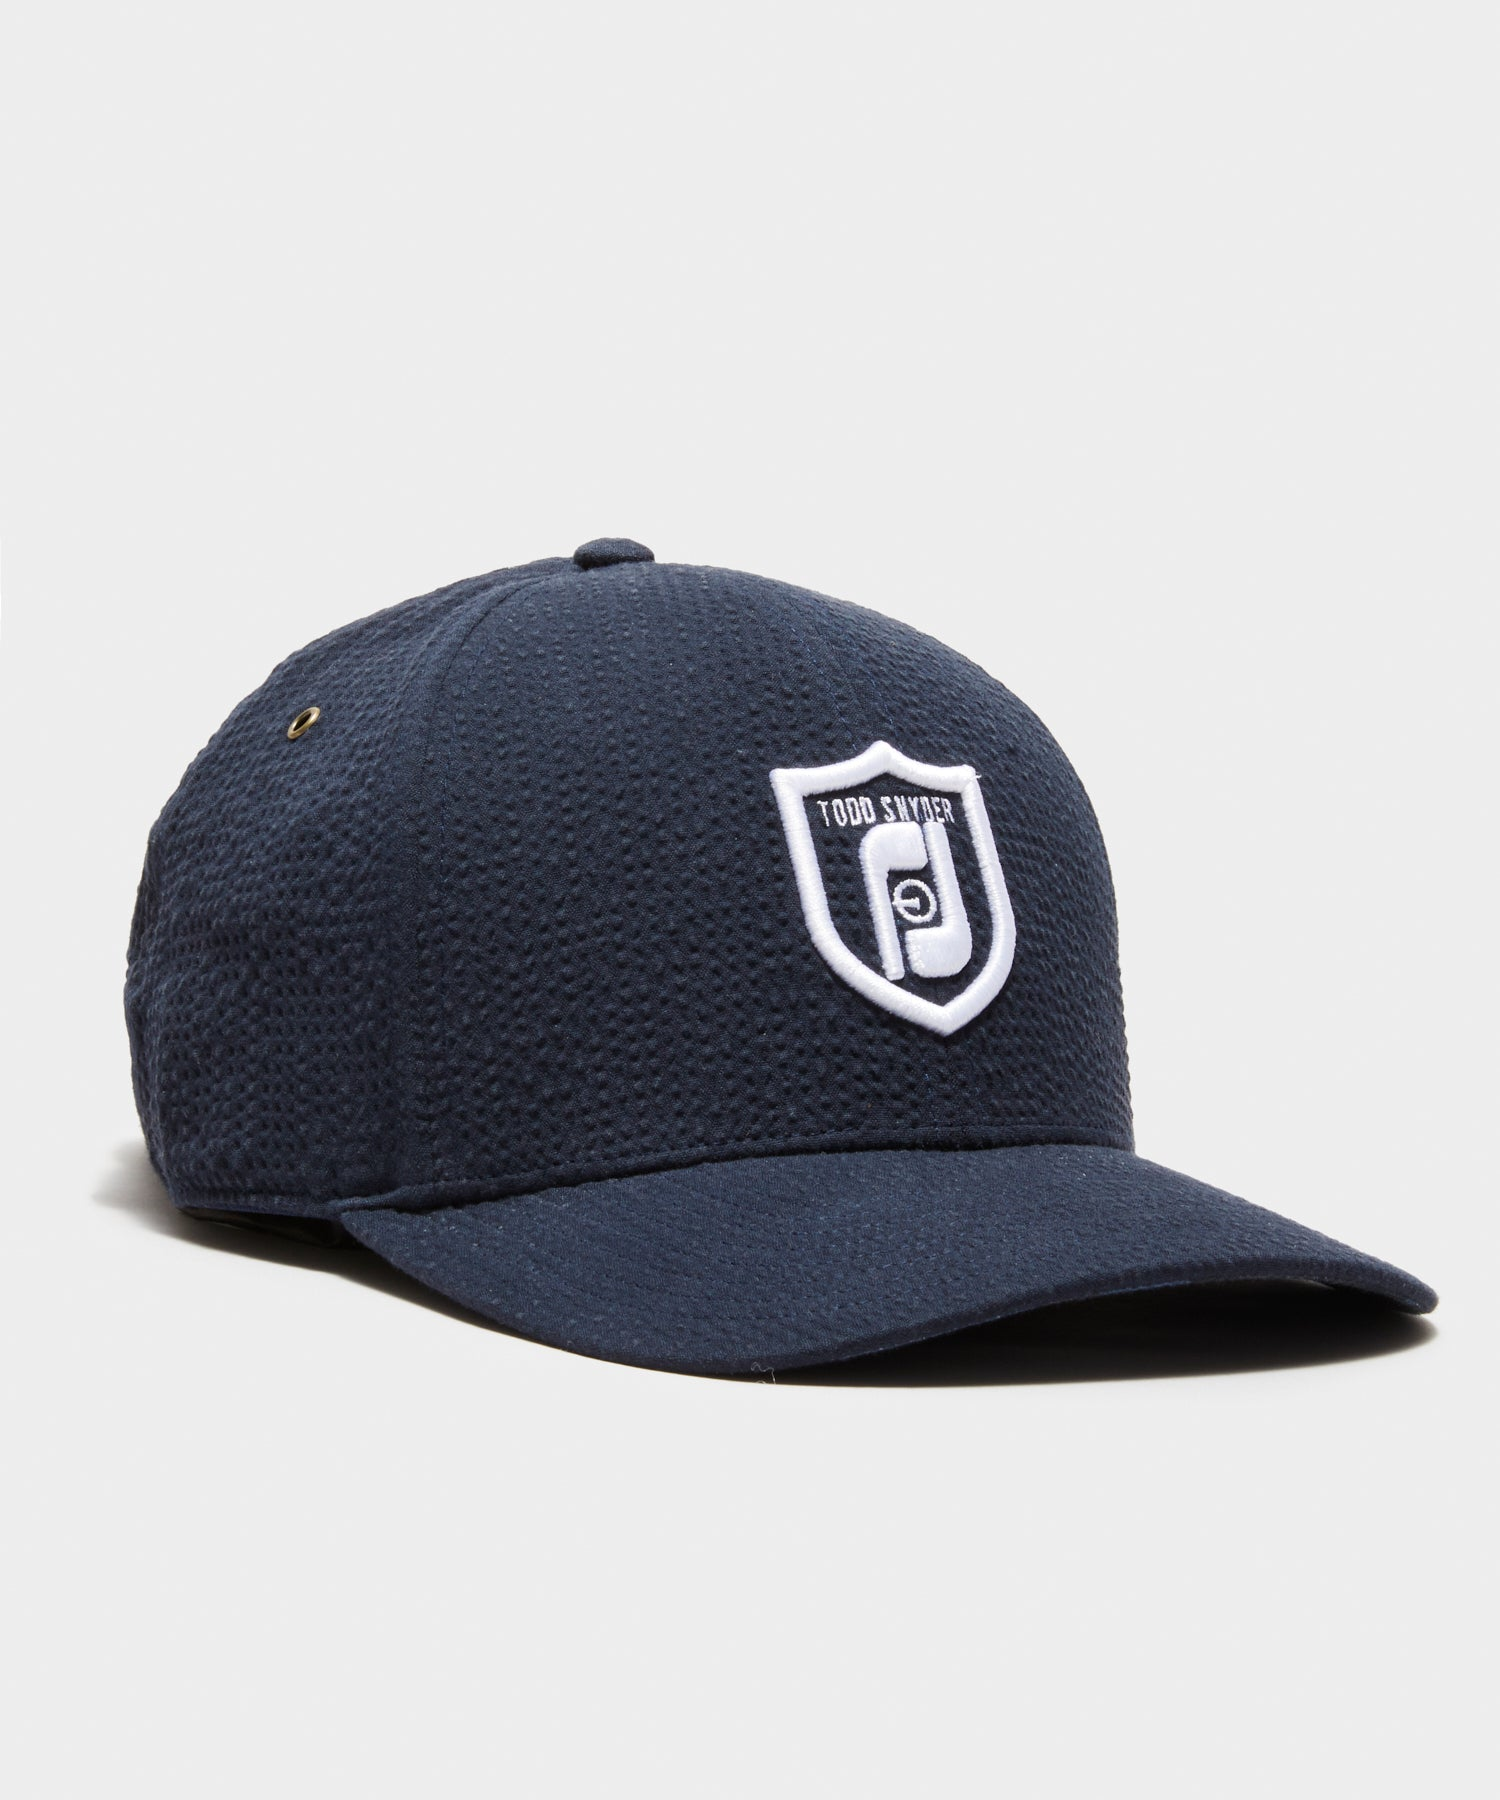 Footjoy x Todd Snyder Seersucker Cap in Navy